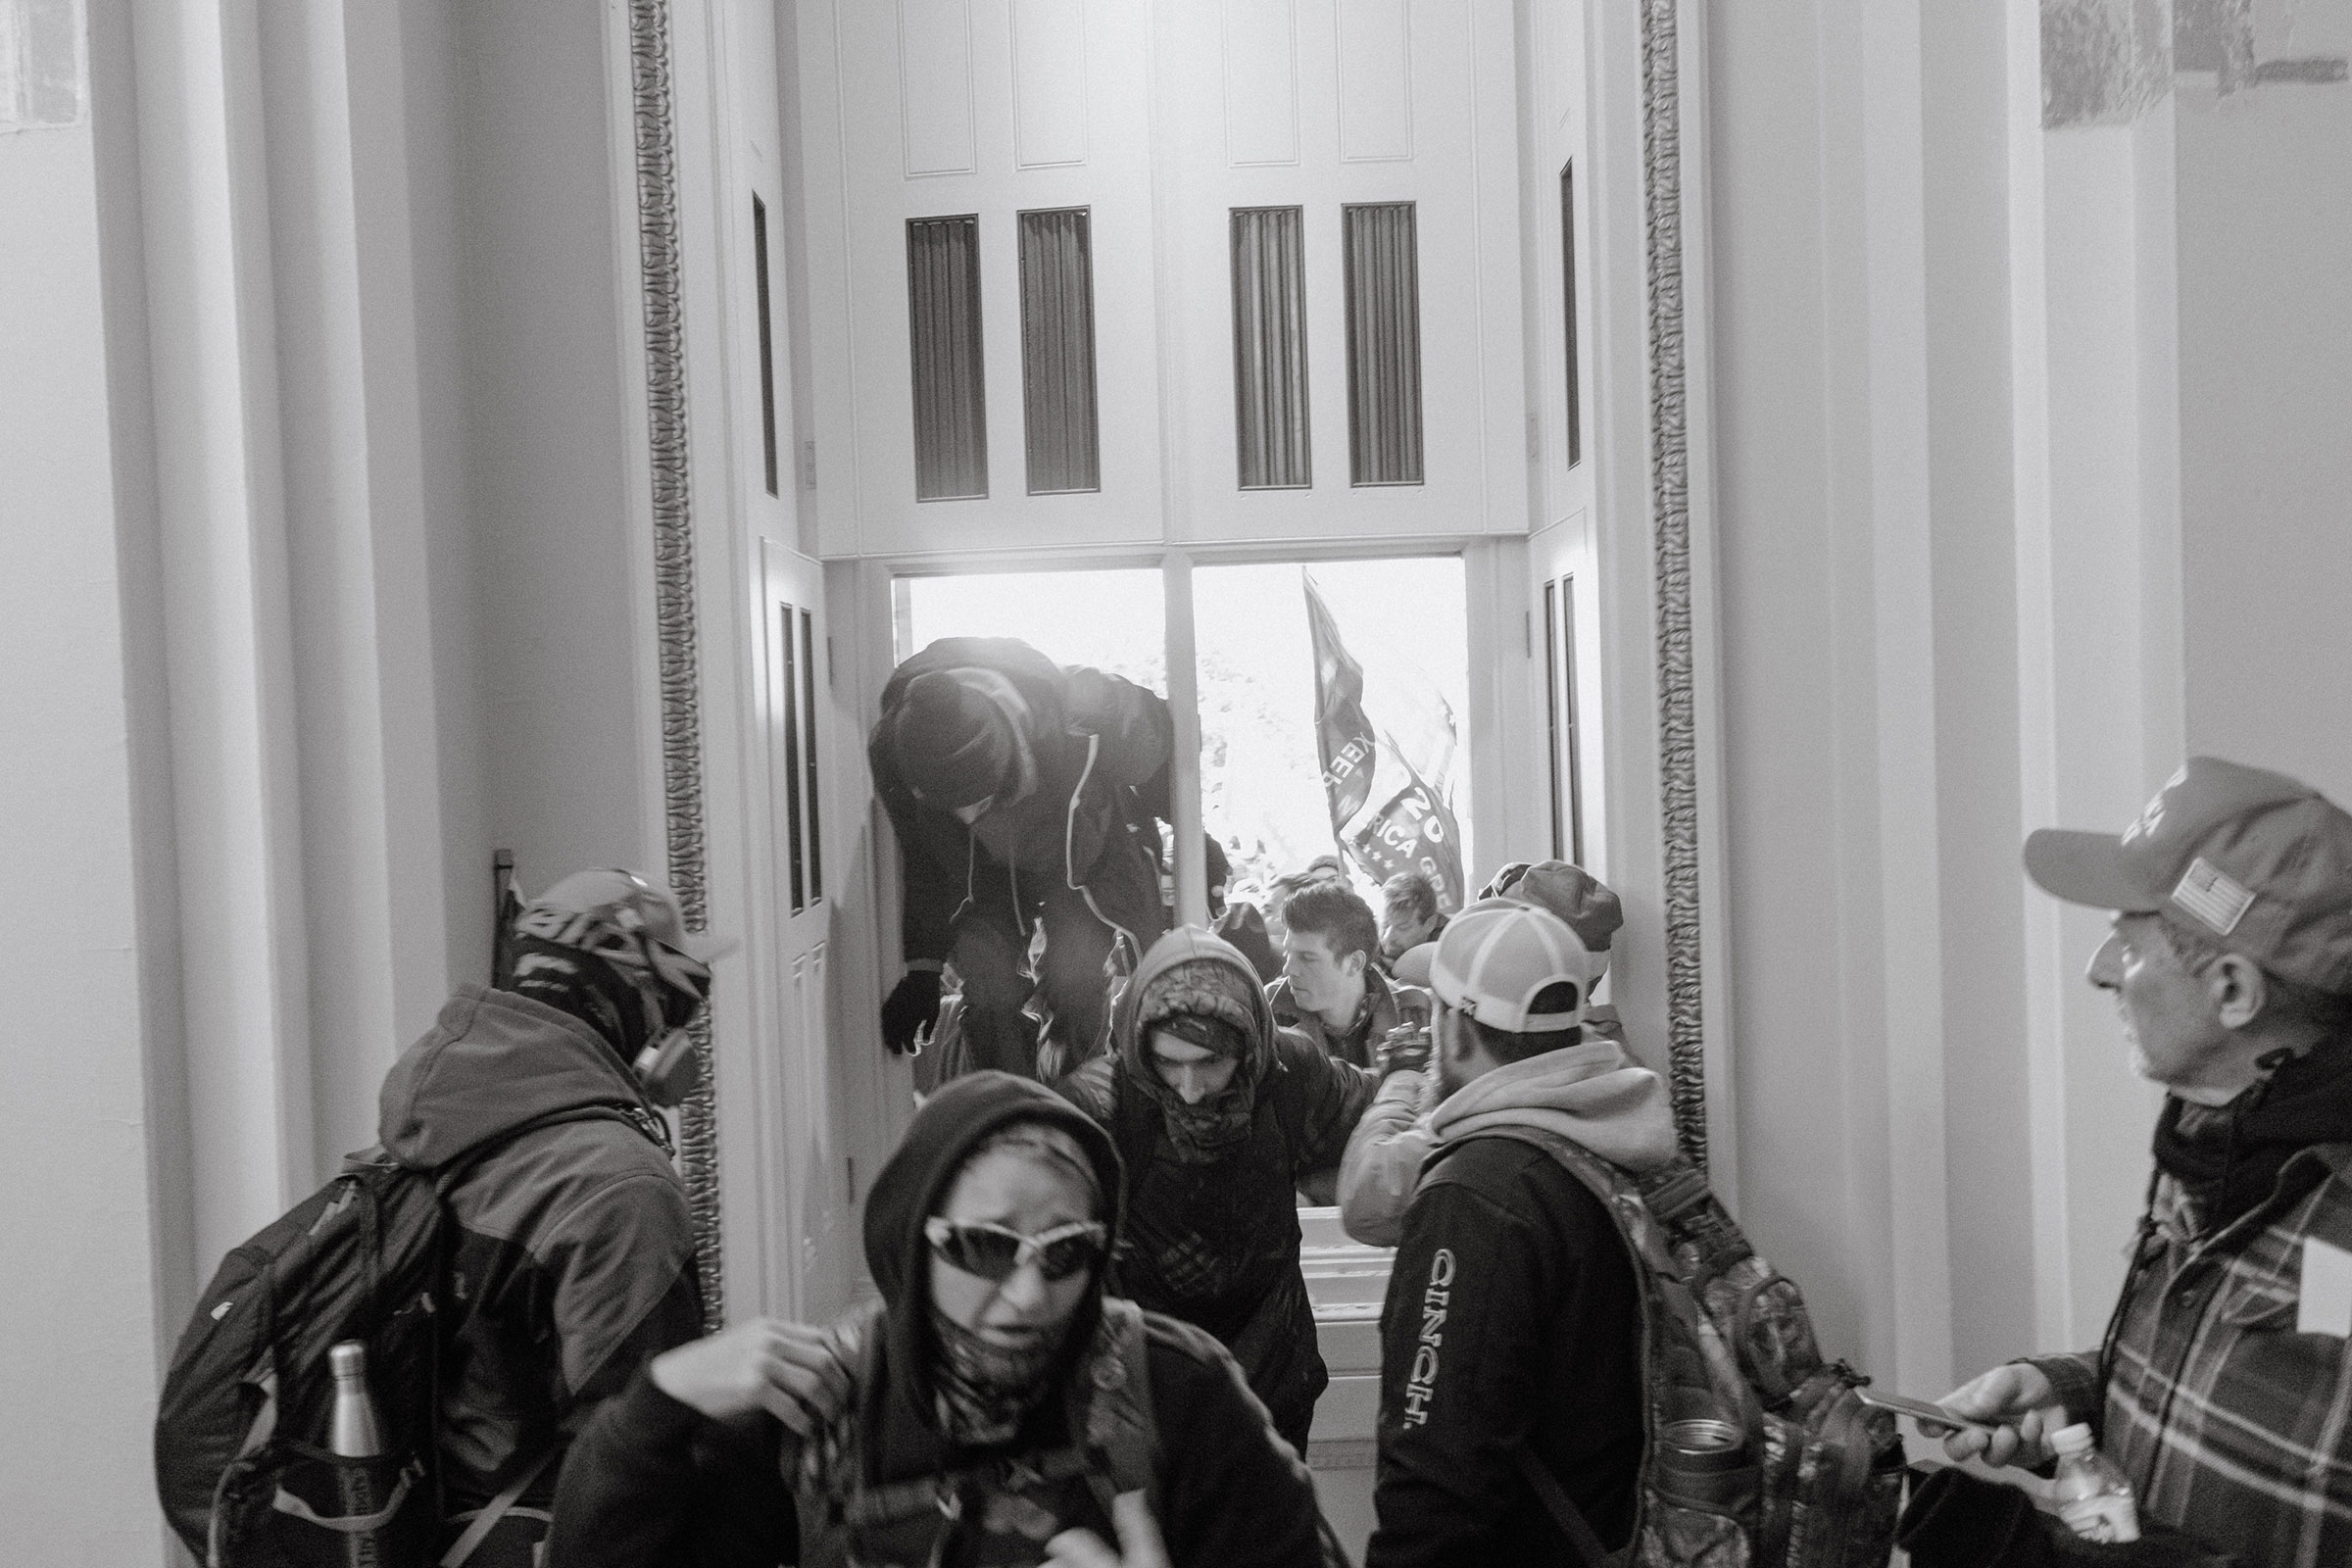 Pro-Trump rioters enter the Capitol through a broken window.